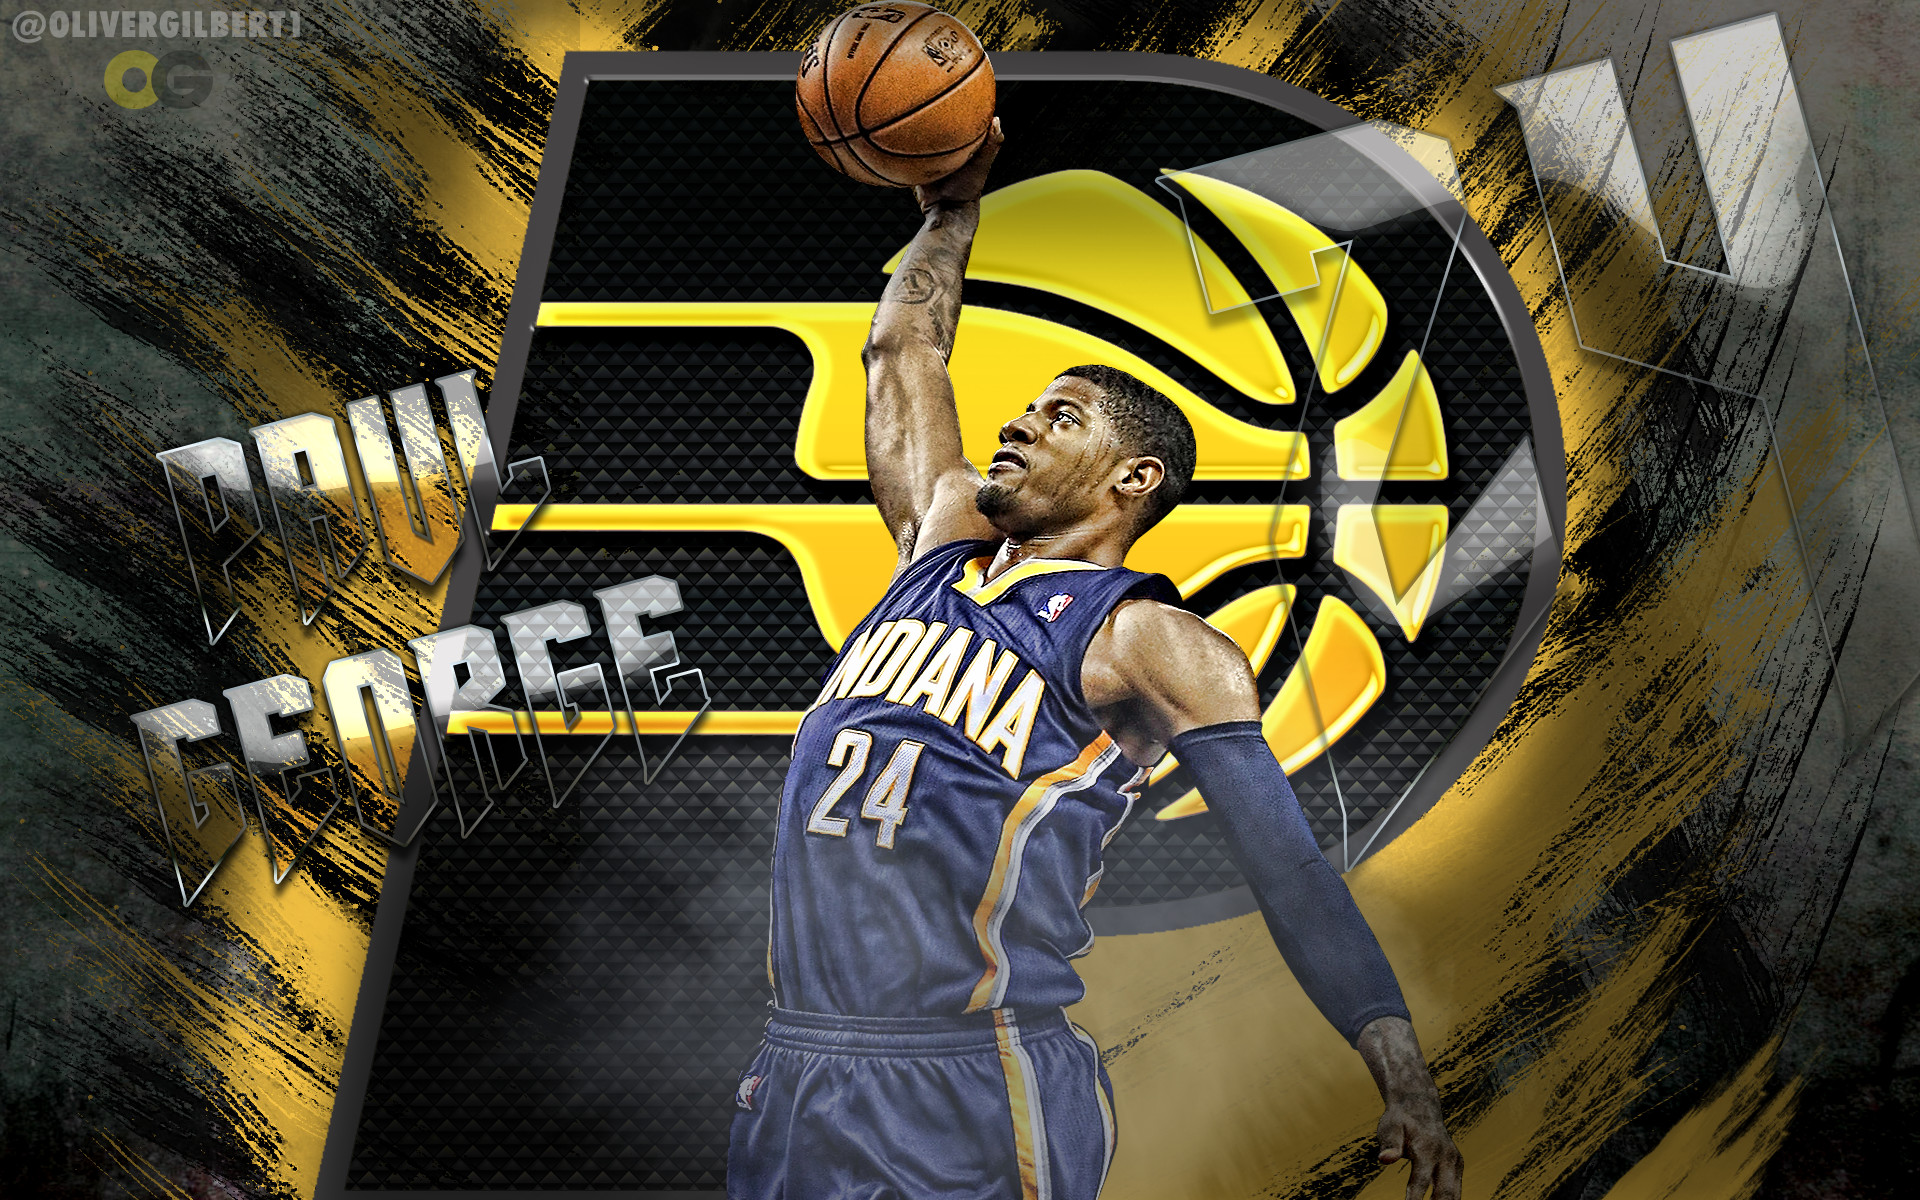 1920x1200 INDIANA PACERS nba basketball (3) wallpaper |  | 227011 |  WallpaperUP